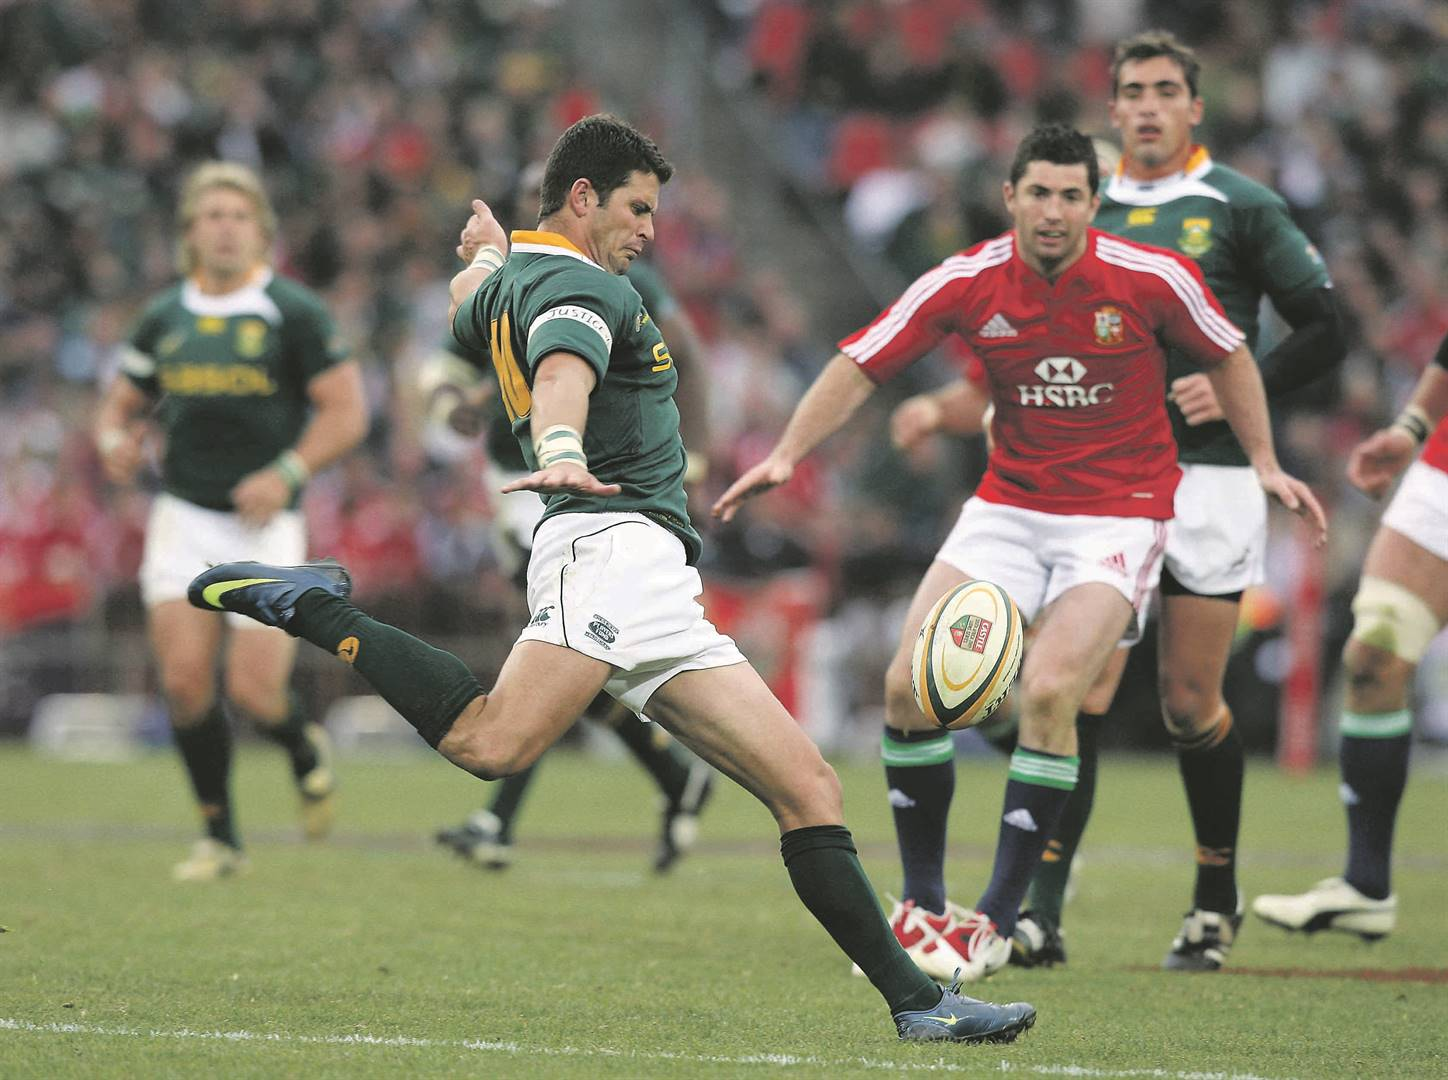 Morné Steyn of SA kicks the ball upfield during the third test match against the British and Irish Lions in 2009 Picture: David Rogers / Getty Images